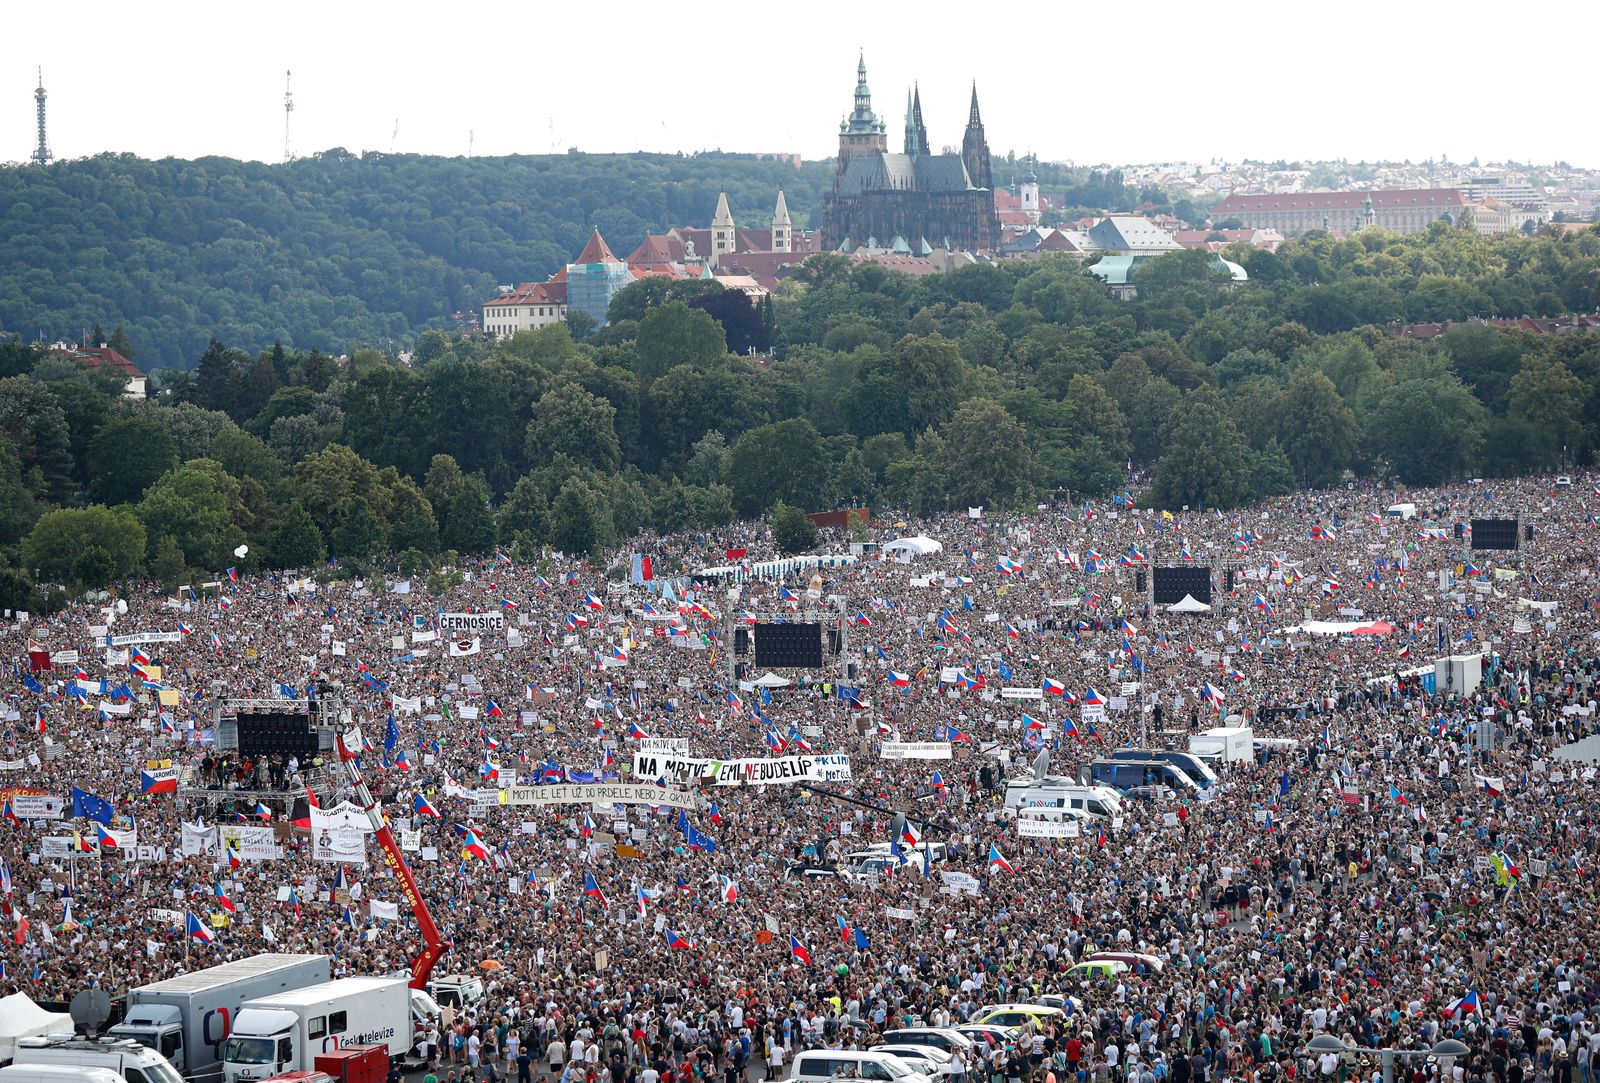 People gather for a protest in Prague, Czech Republic, Sunday, June 23, 2019. Protesters are on calling on Czech Prime Minister Andrej Babis to step down over fraud allegations and subsidies paid to his former companies. (AP Photo/Petr David Josek)